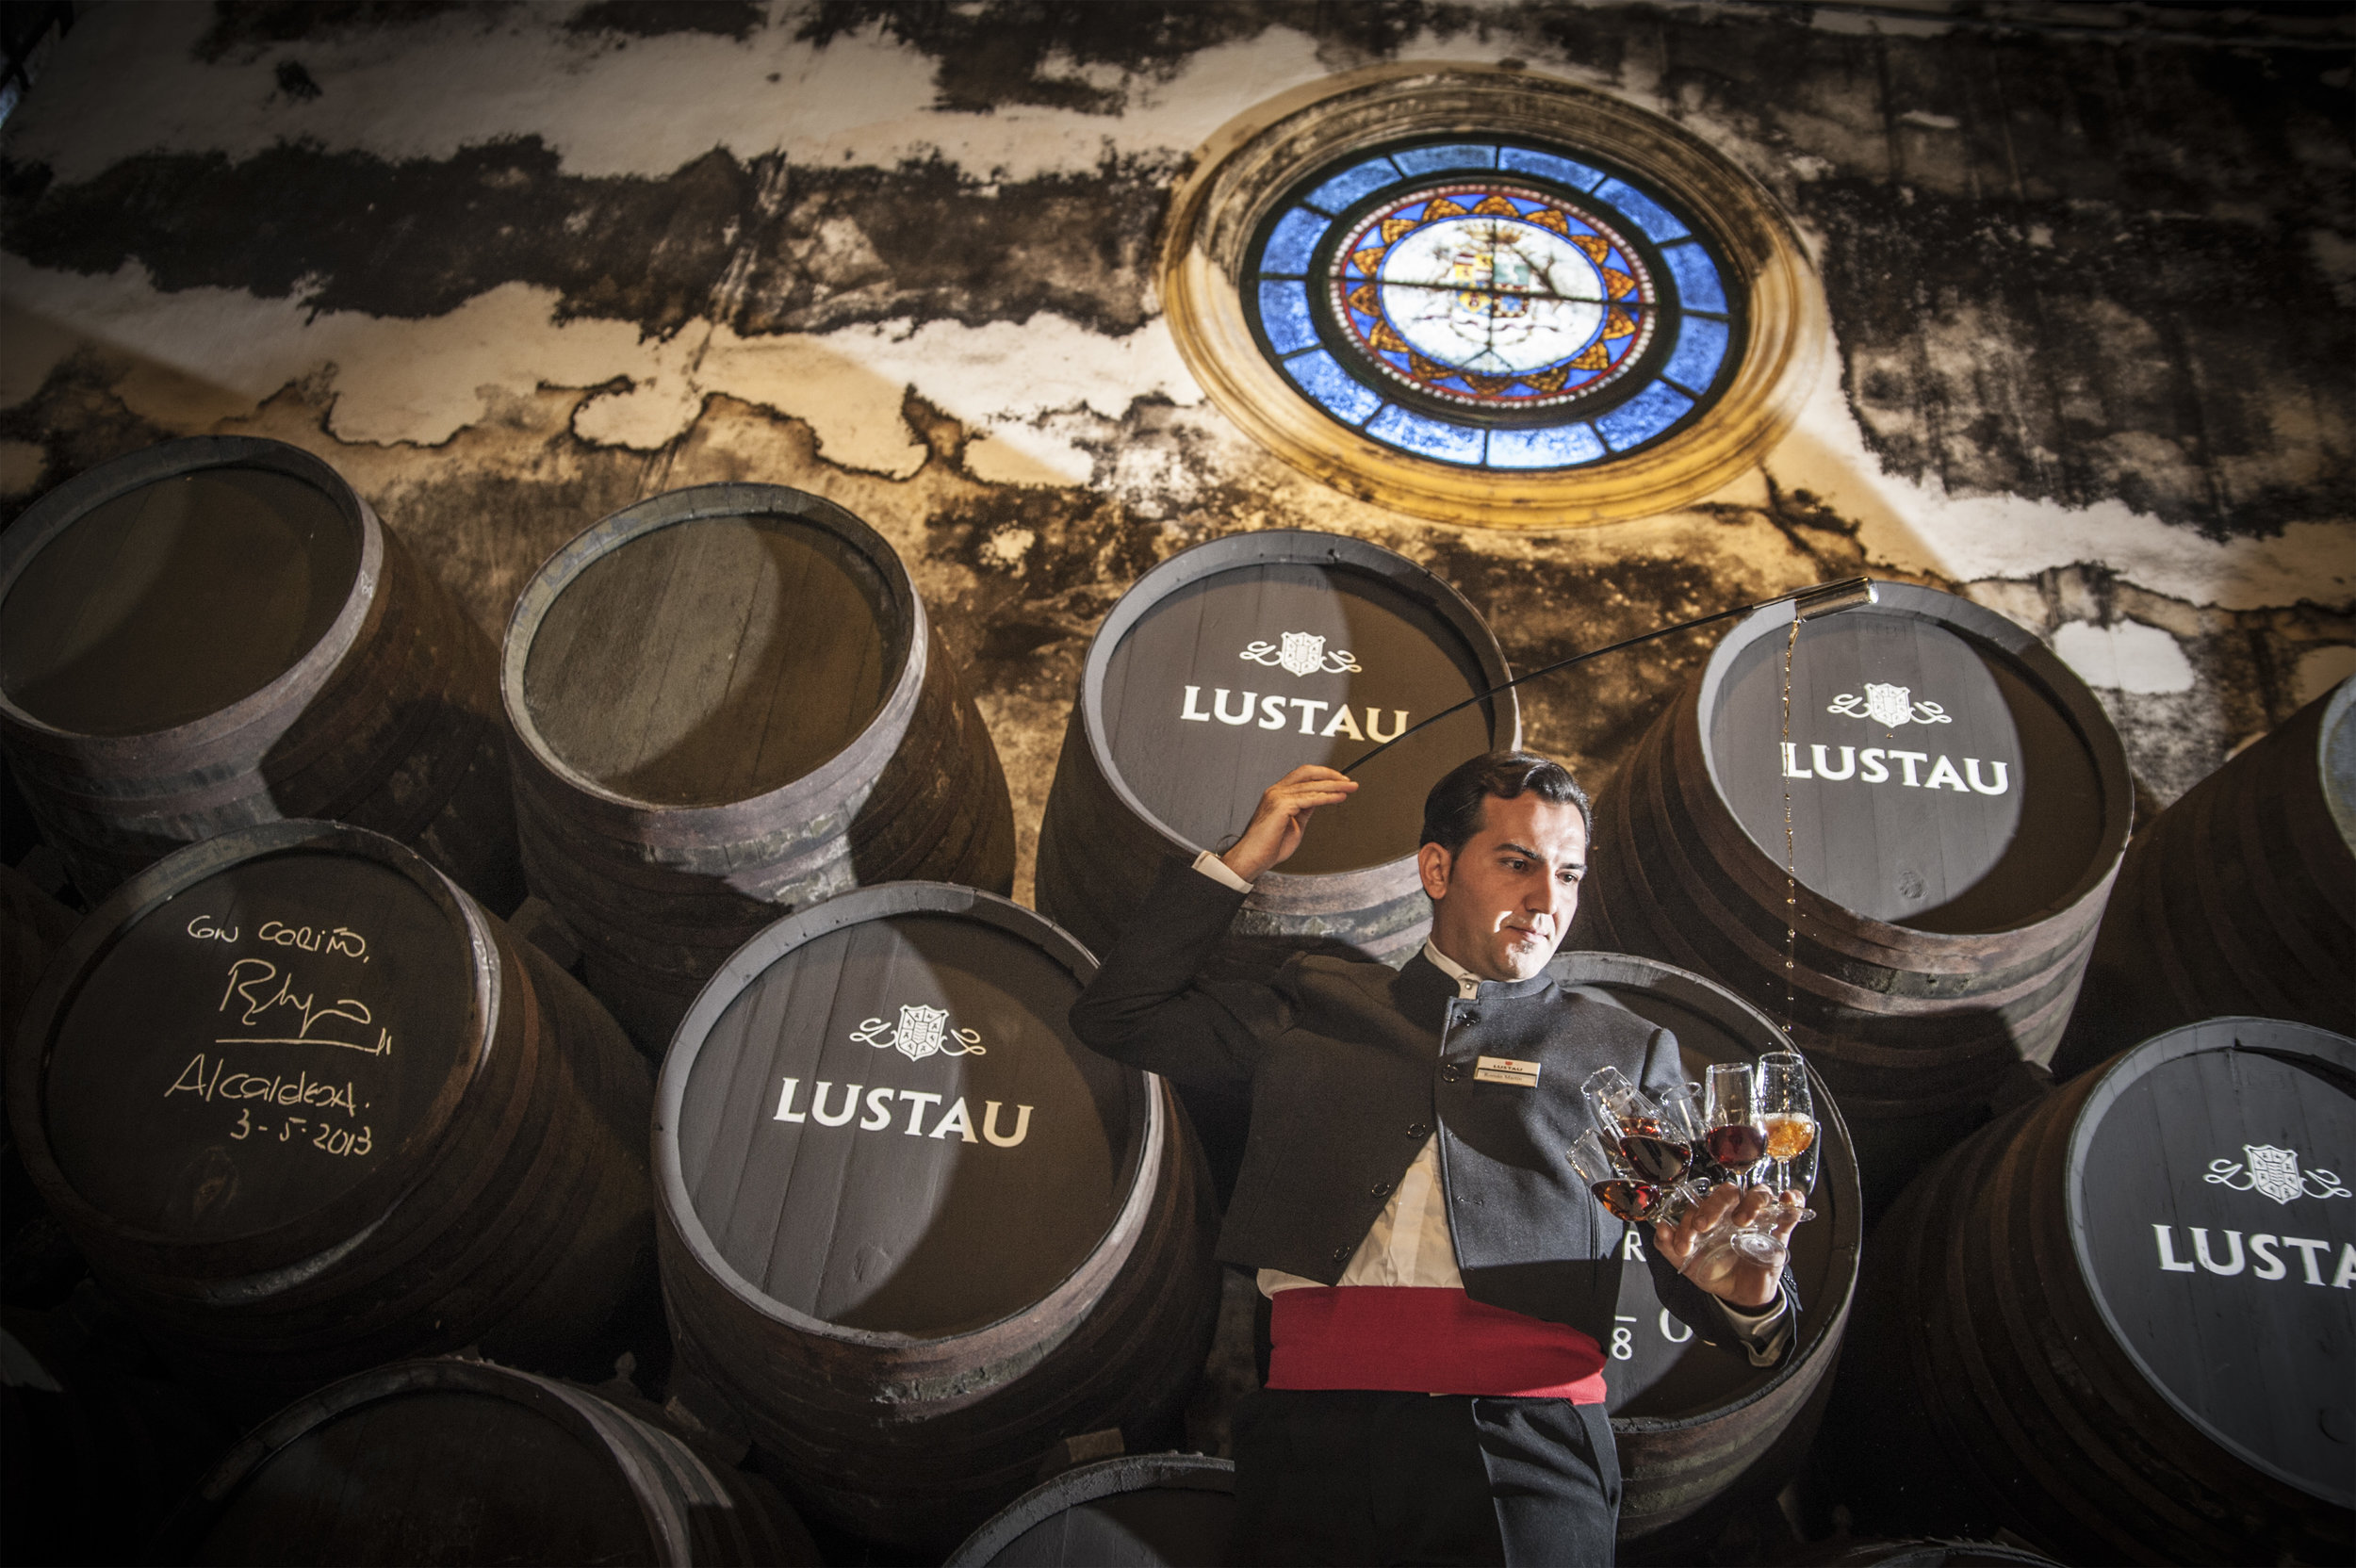 A venenciador demonstrates his sherry-pouring skills